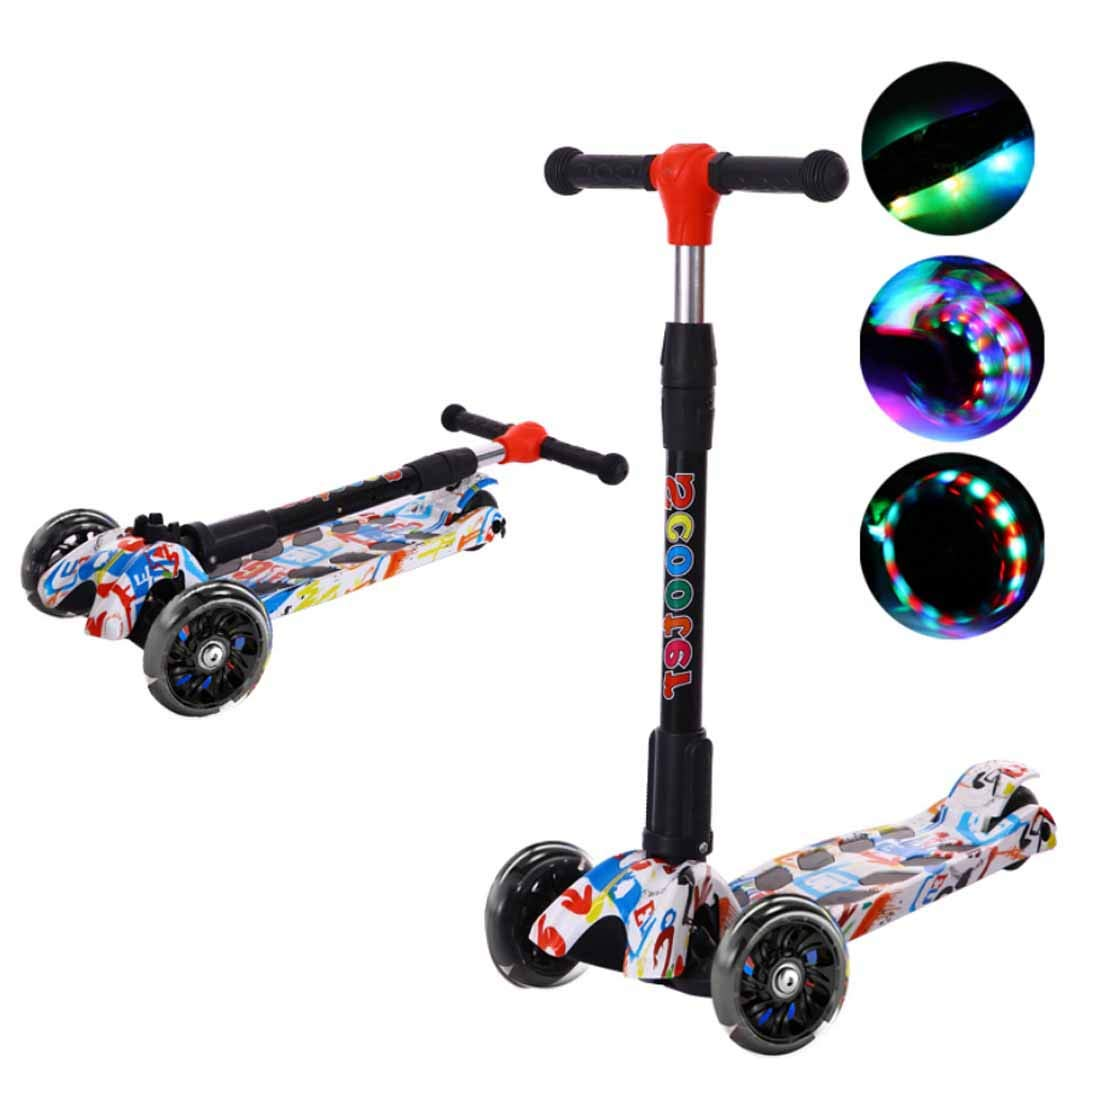 Pedal Scooter with Music Flash Teens 3-Wheeled Scooter Easy Folding Kick Scooter Durable Push Scooter Suitable for Age 3 Up Kids,White,Narrowwheel